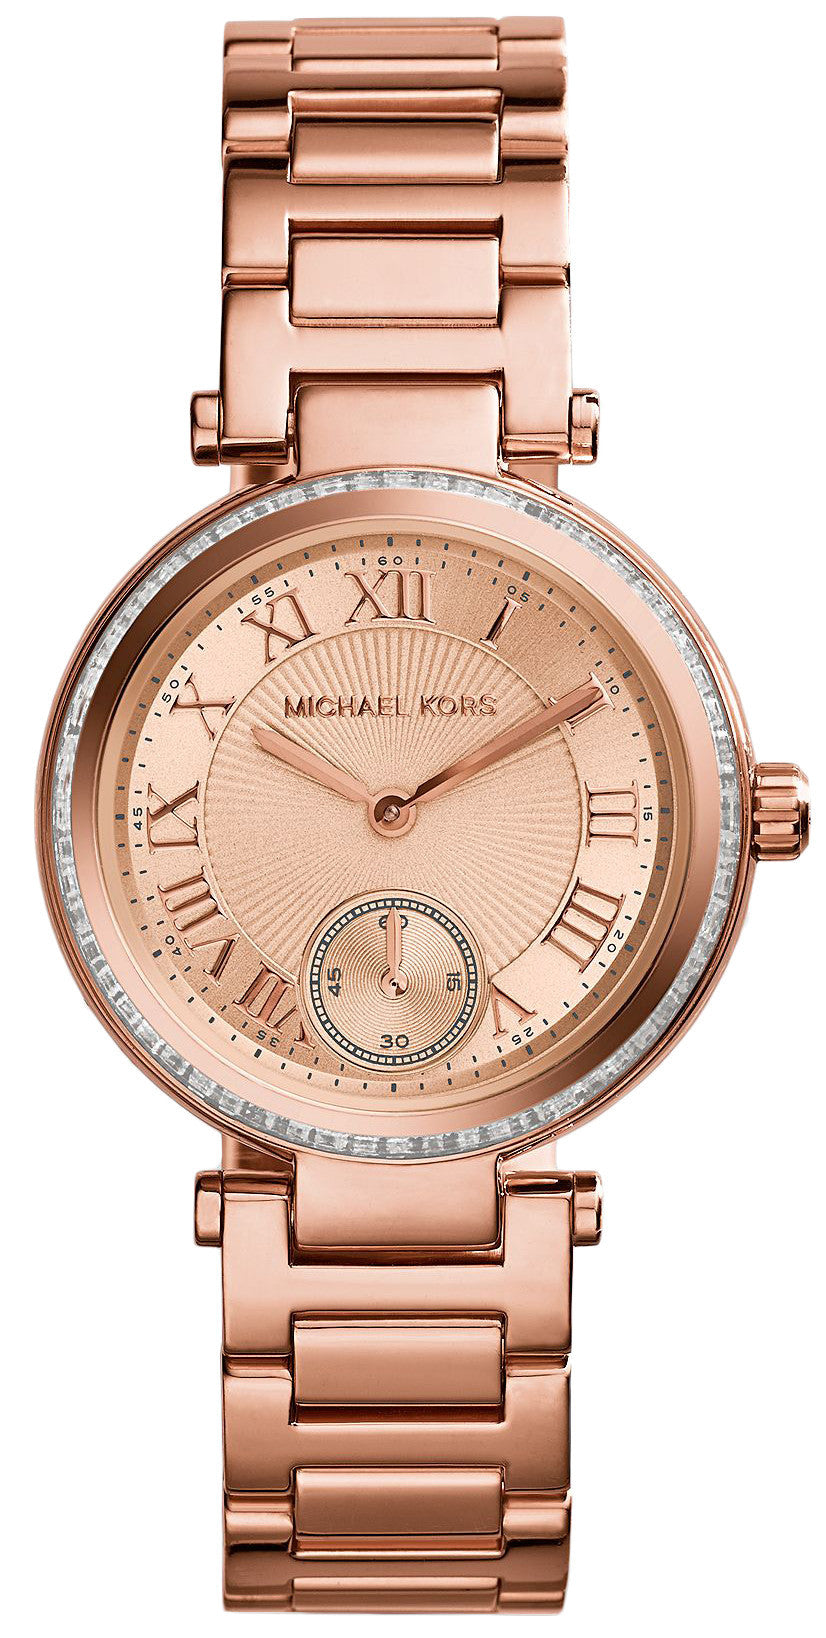 Michael Kors Watch Skylar